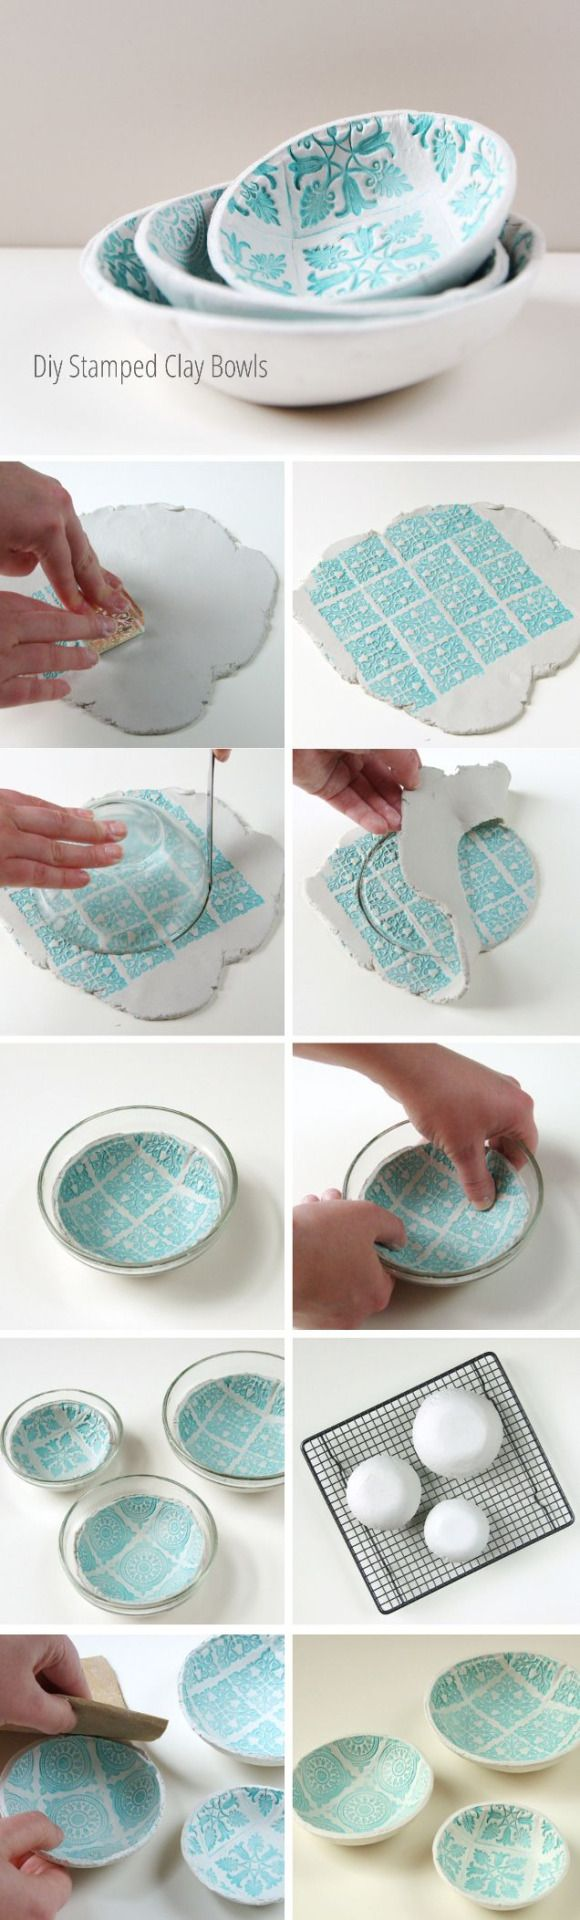 DIY Room Decor — alittlecraftinyourday:   DIY STAMPED CLAY BOWLS